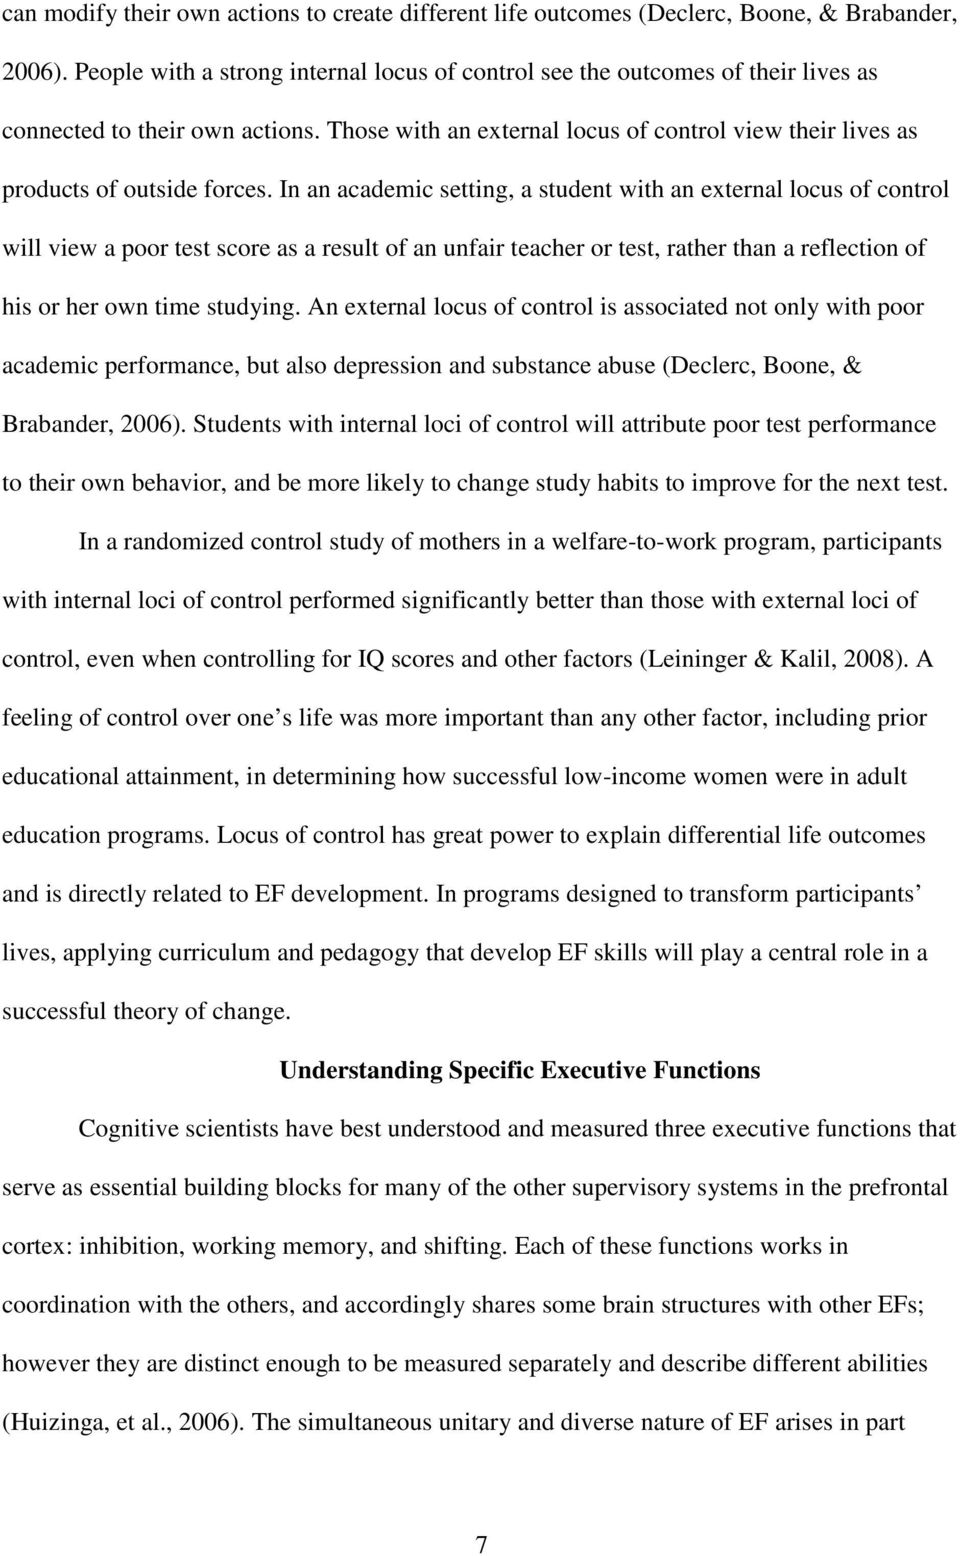 Those with an external locus of control view their lives as products of outside forces.